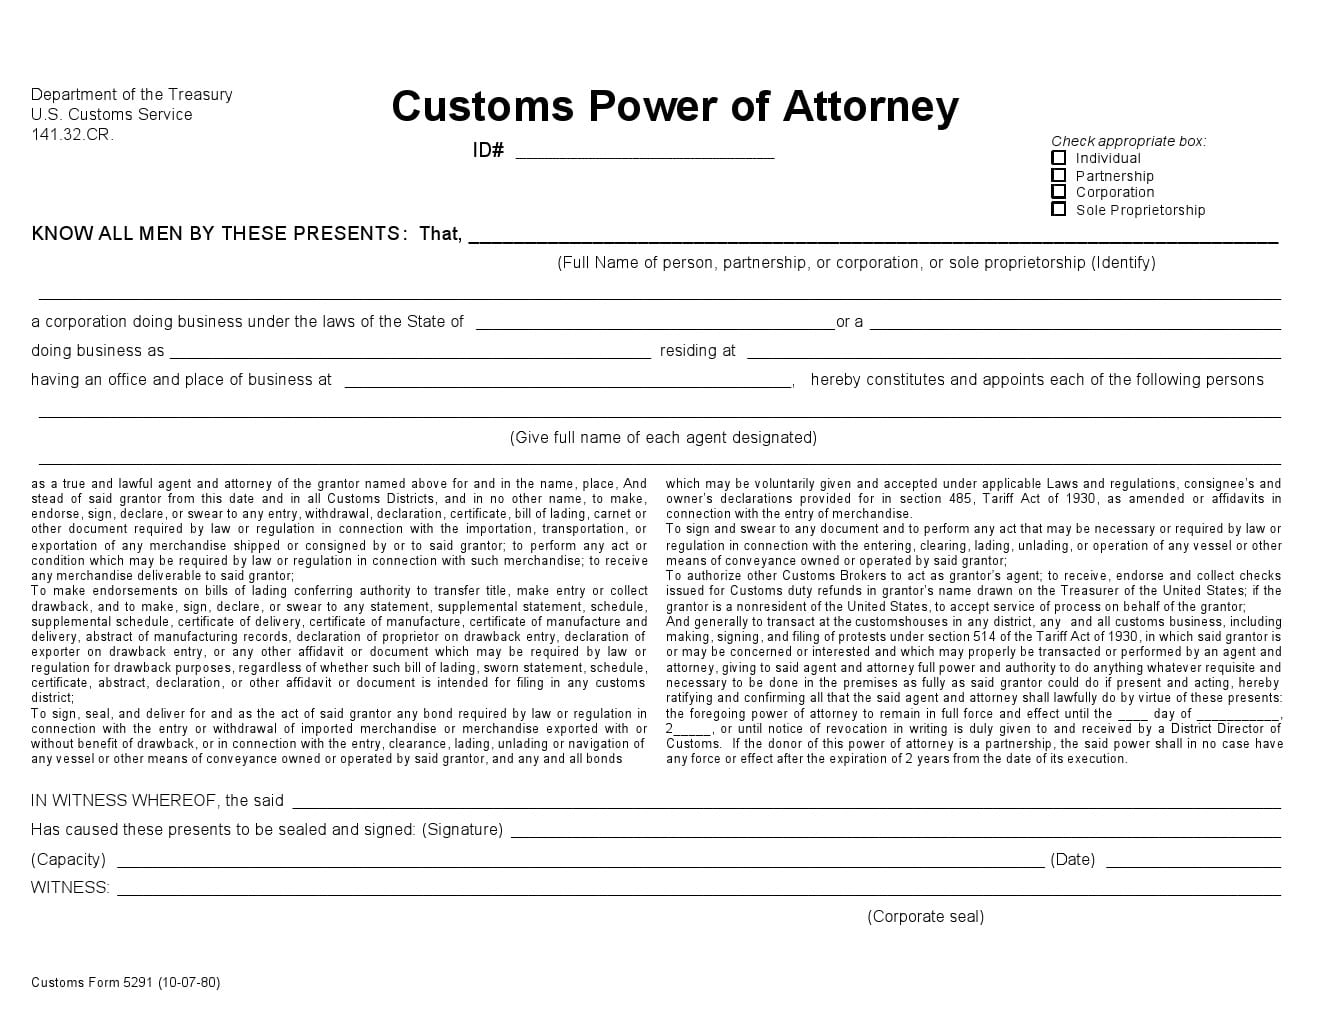 Free Customs Power of Attorney Forms